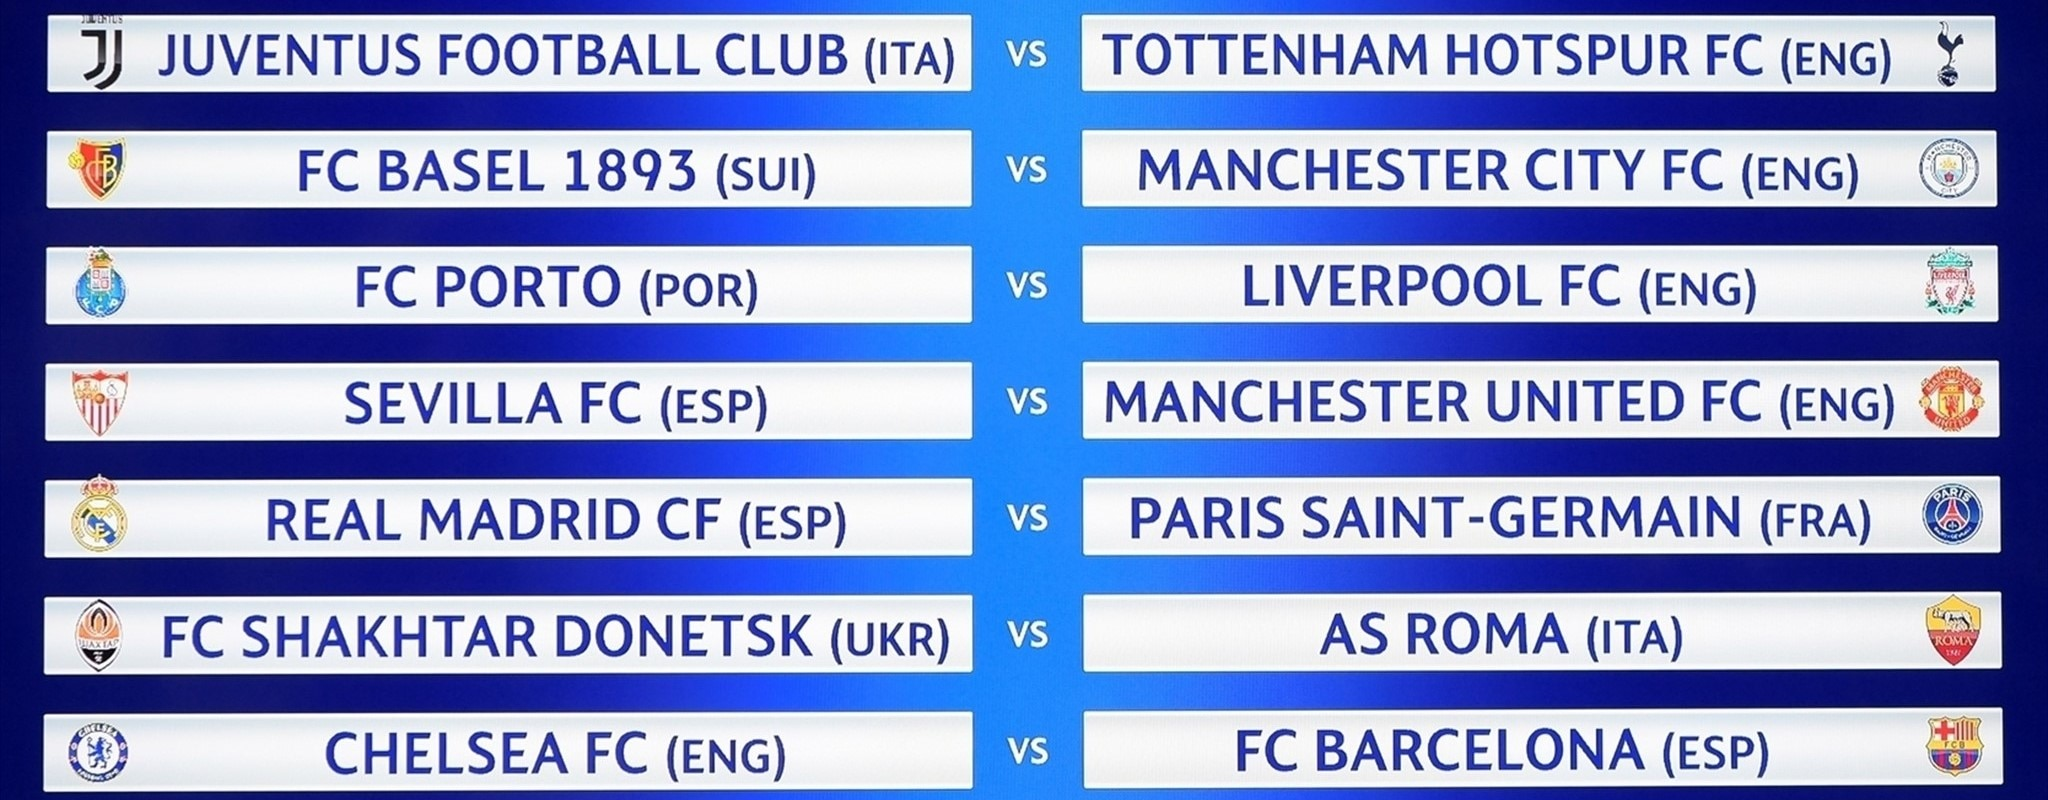 Full guide to the Champions League round of 16 draw